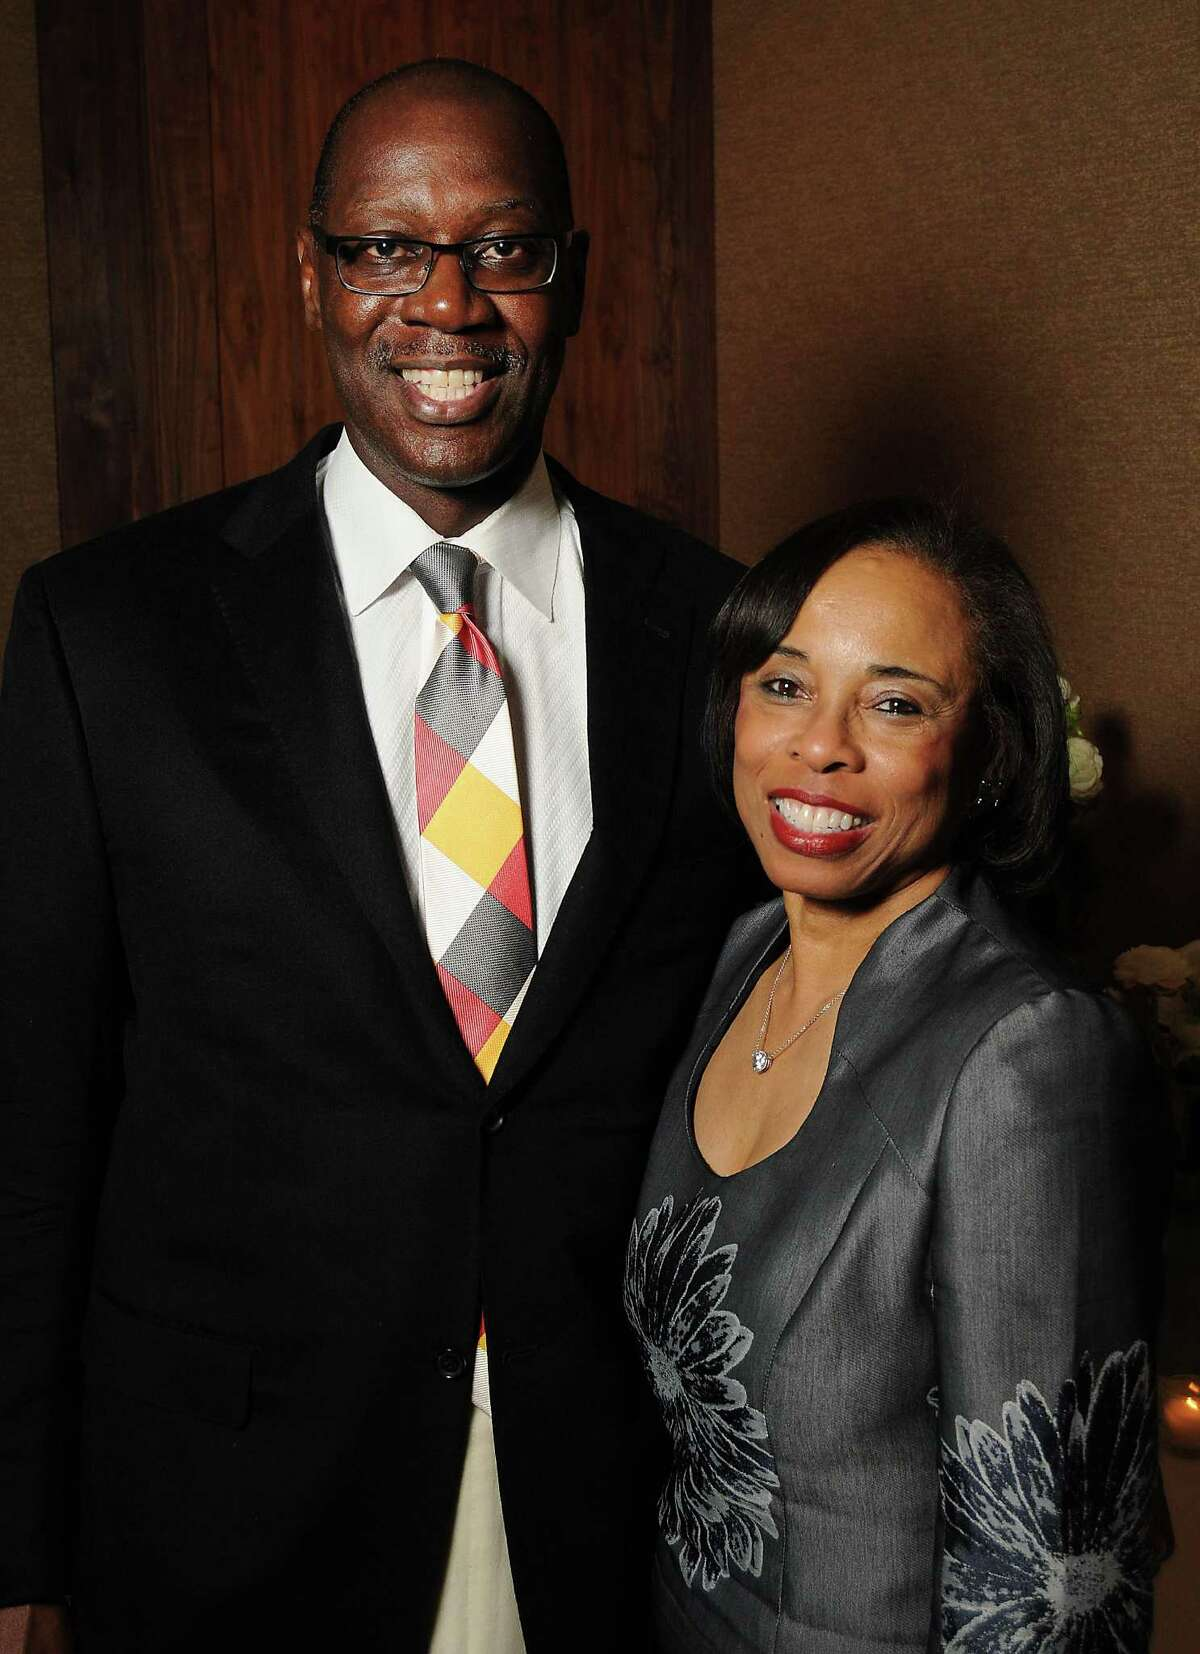 Phyllis and Cornell Williams